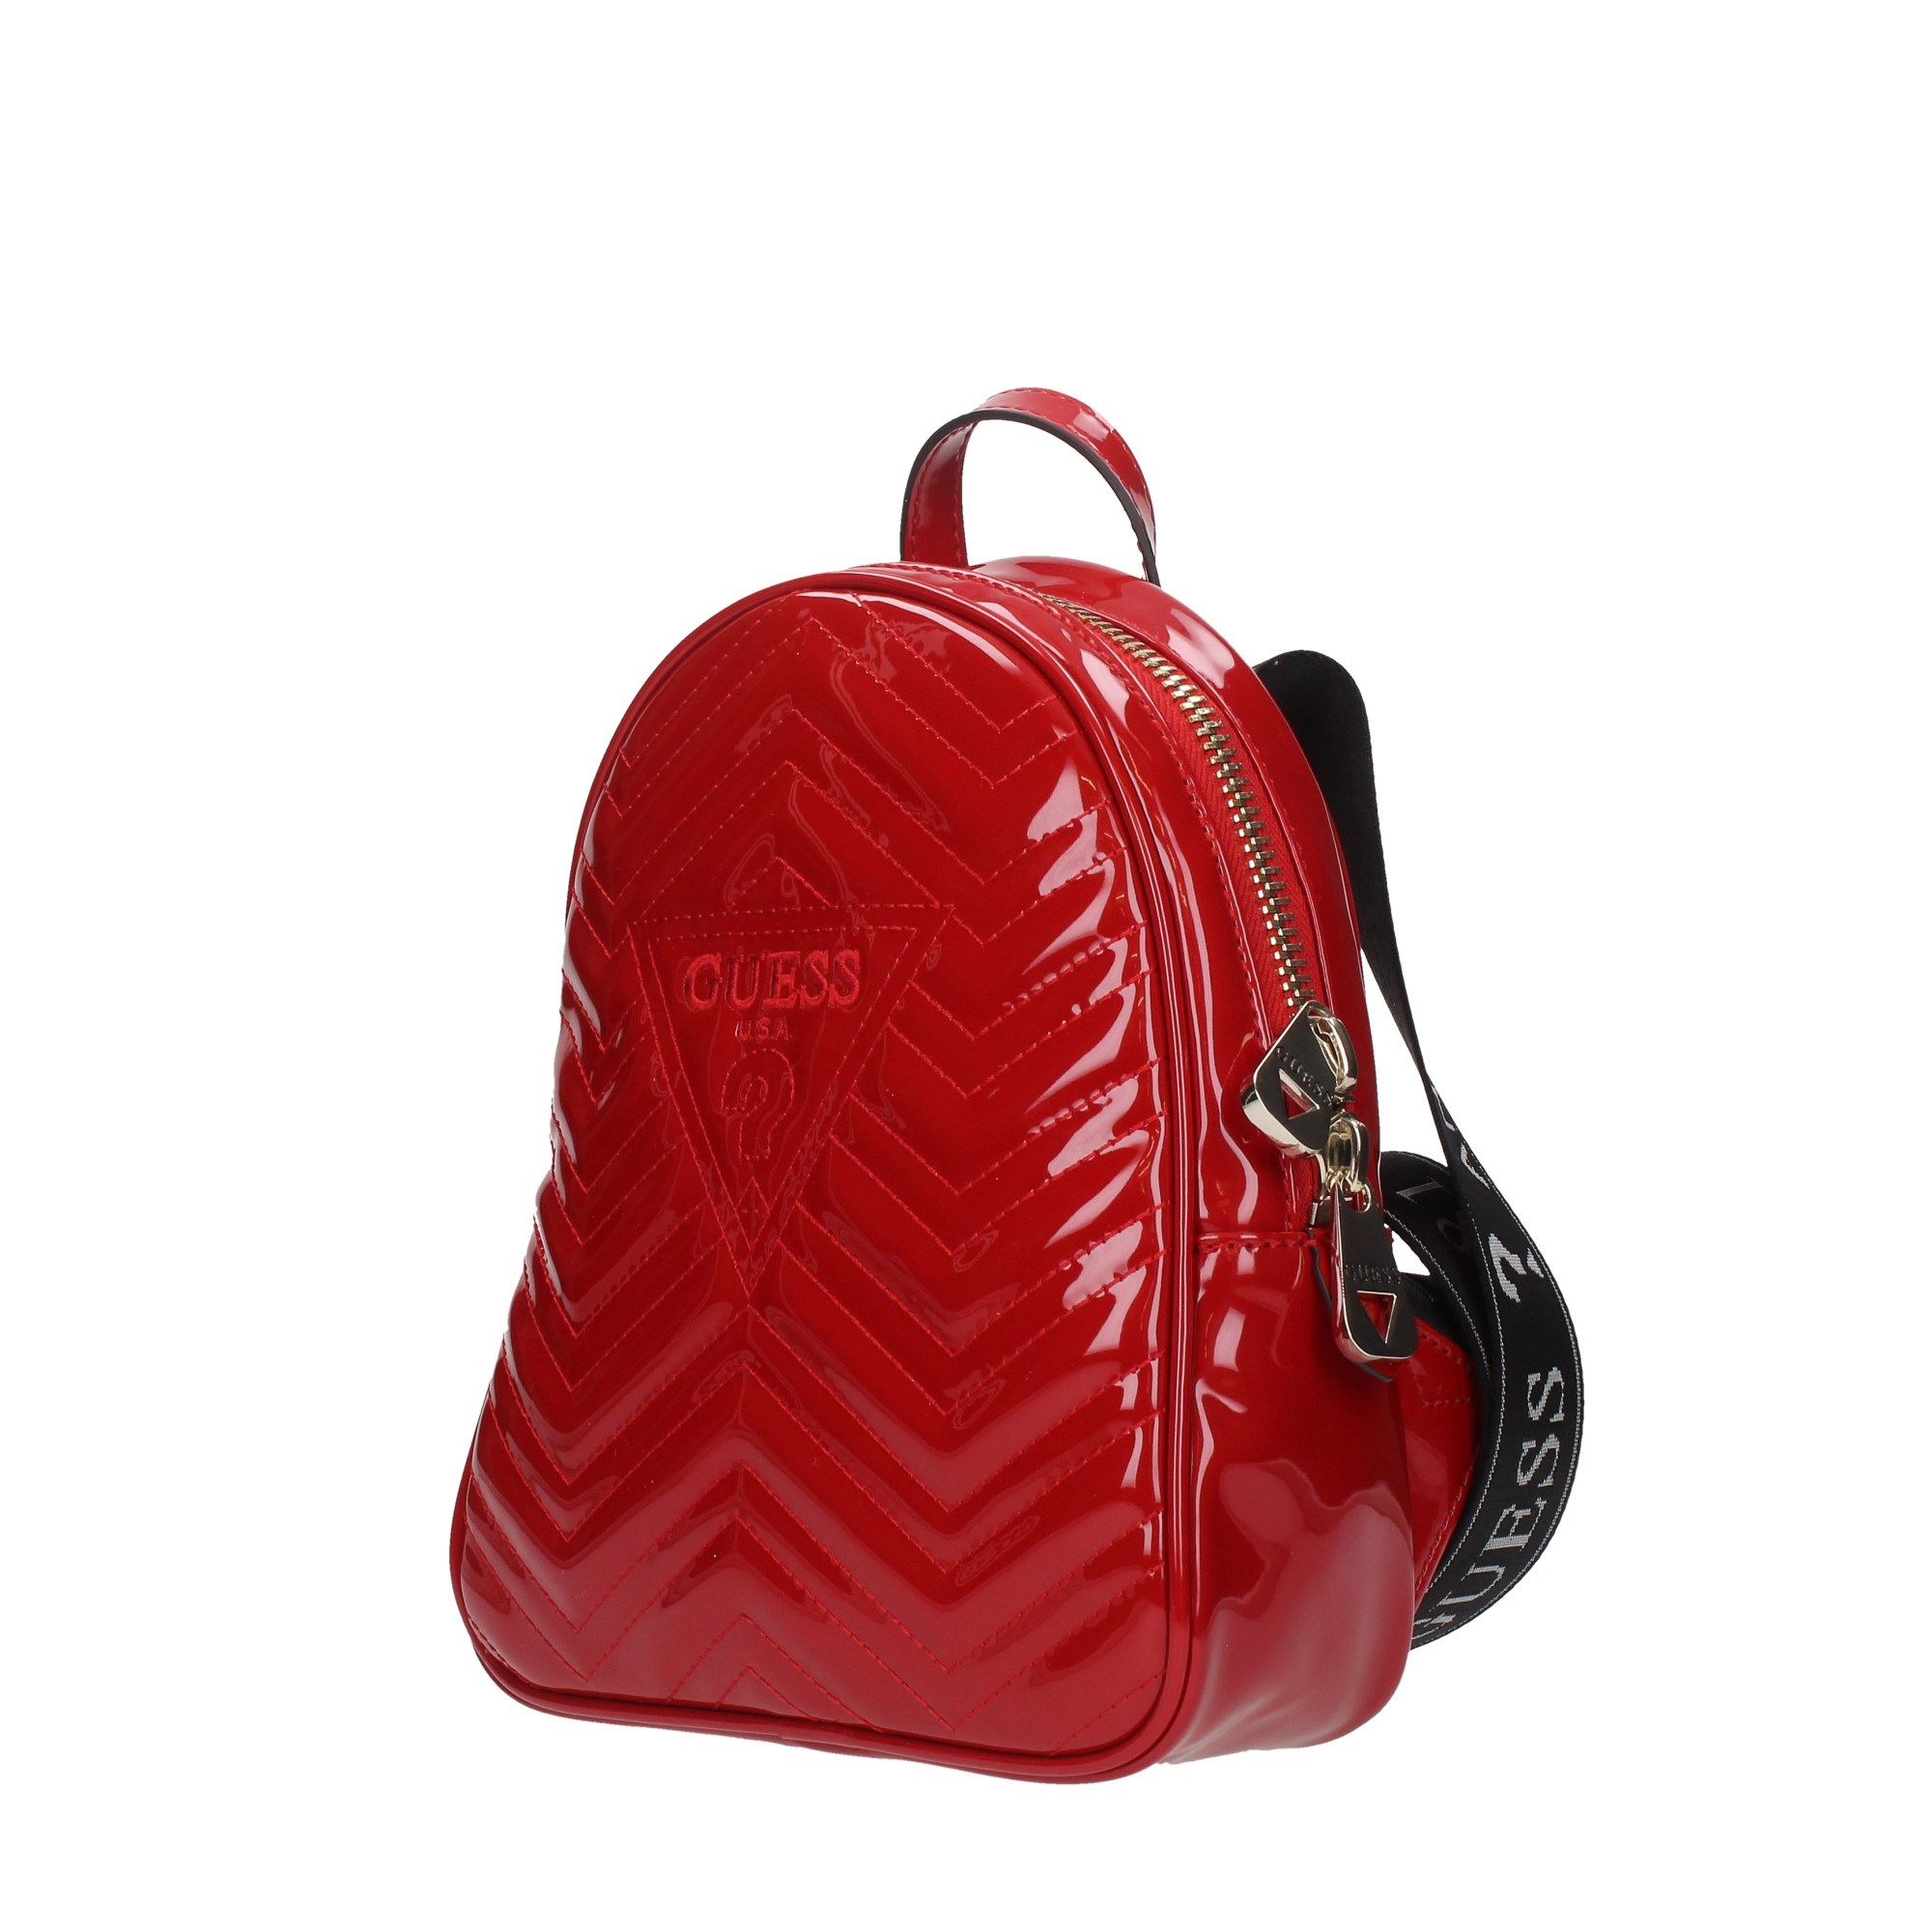 Guess Borse Accessories Women Backpack Red HWPG74/78320